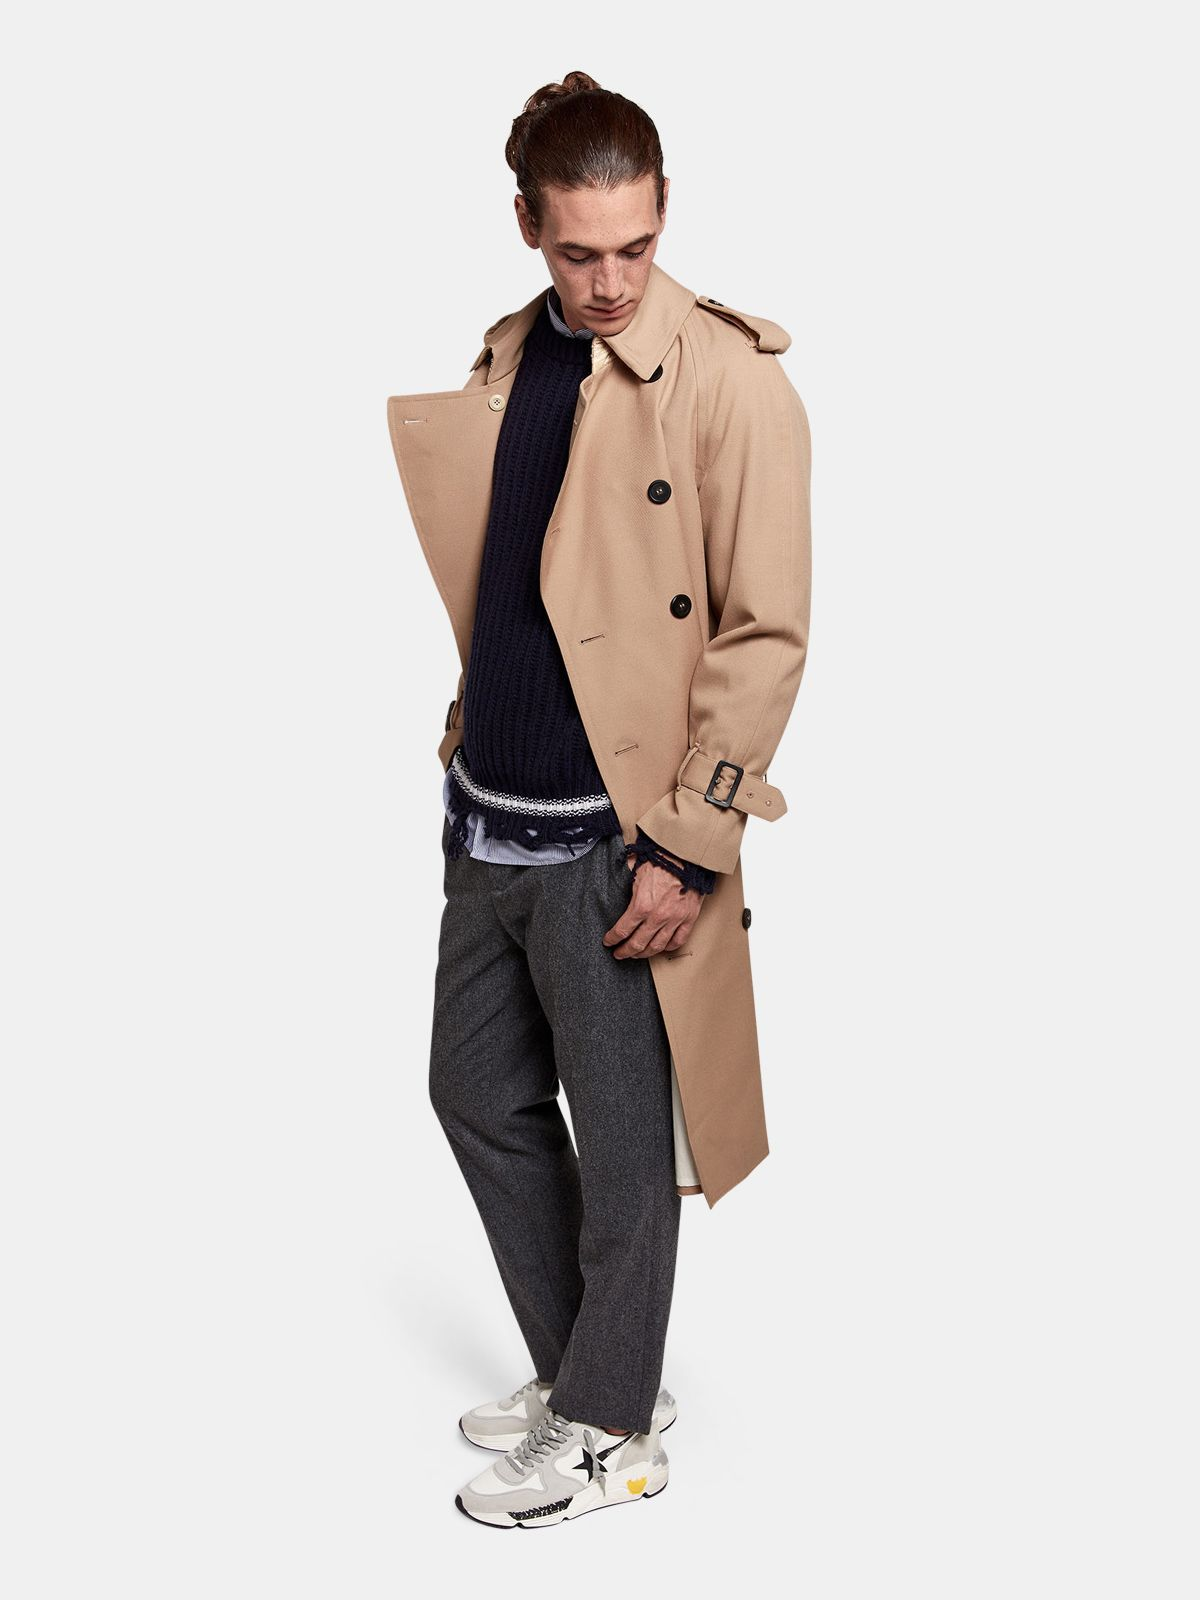 Golden Goose - Hitoshi trench coat in wool with inserts in nylon in